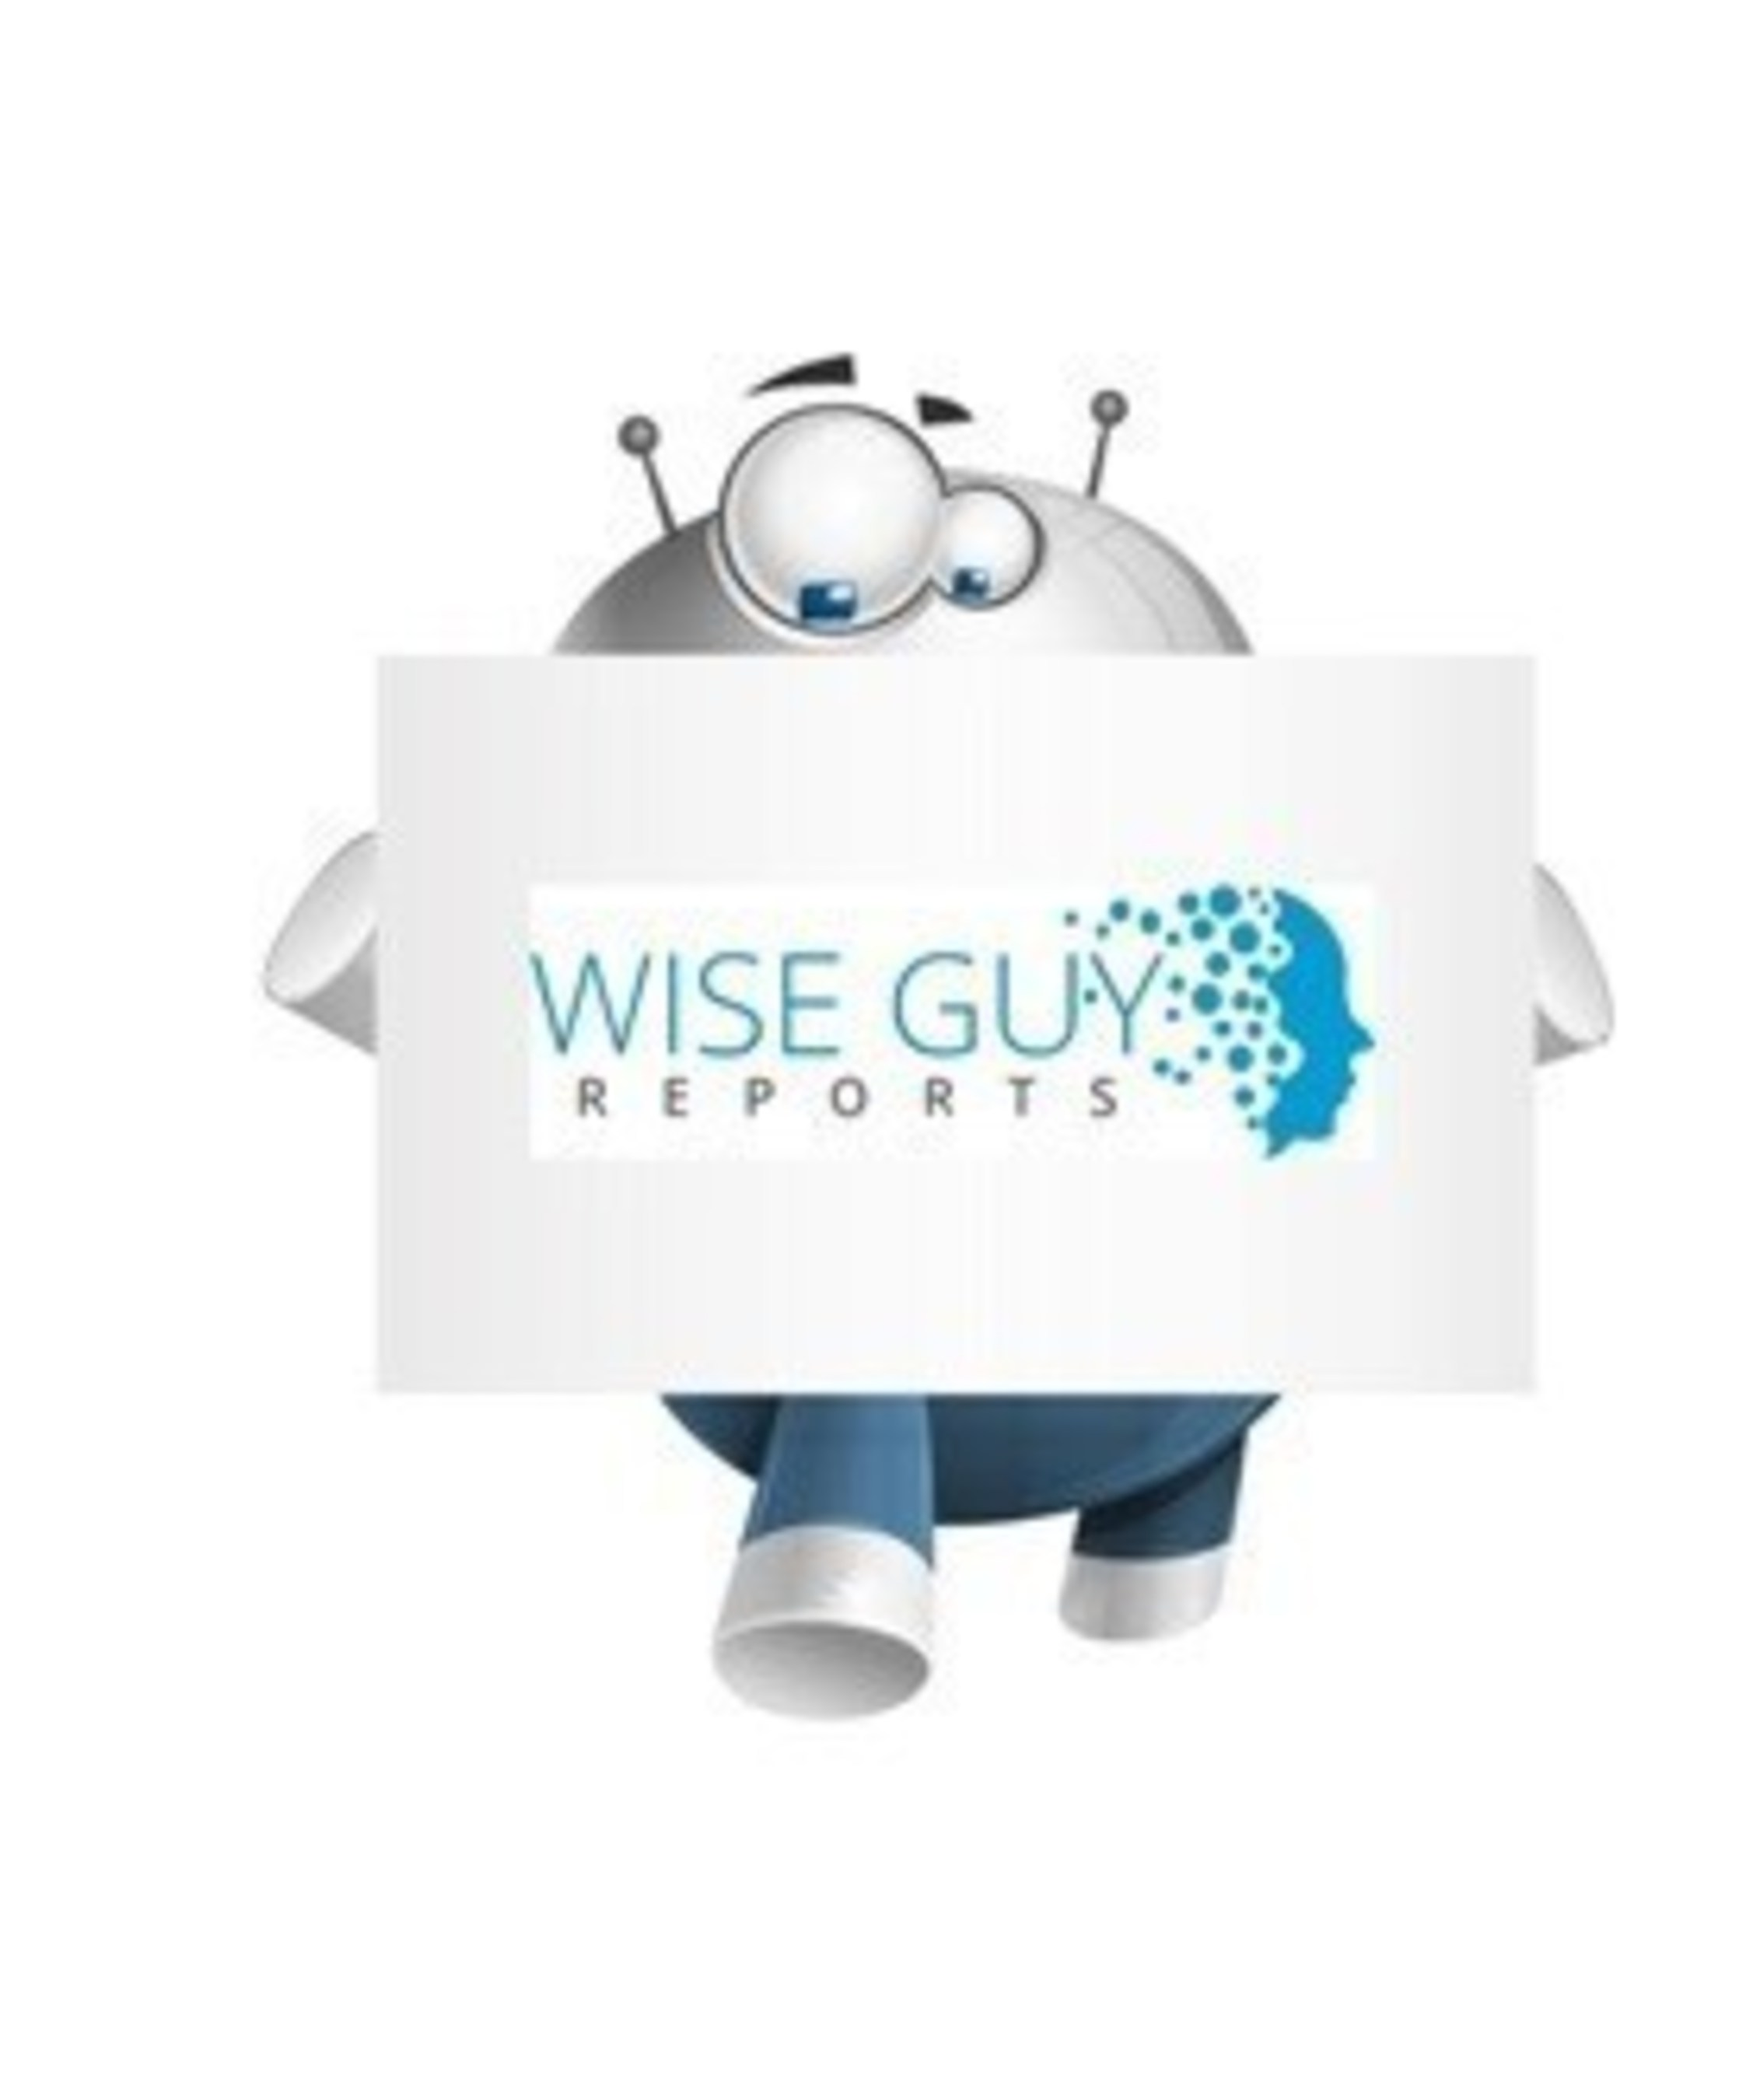 Global Femtocell Market to Grow 17.70% CAGR to 2019 Says a New Report Available at WiseGuyReports.com